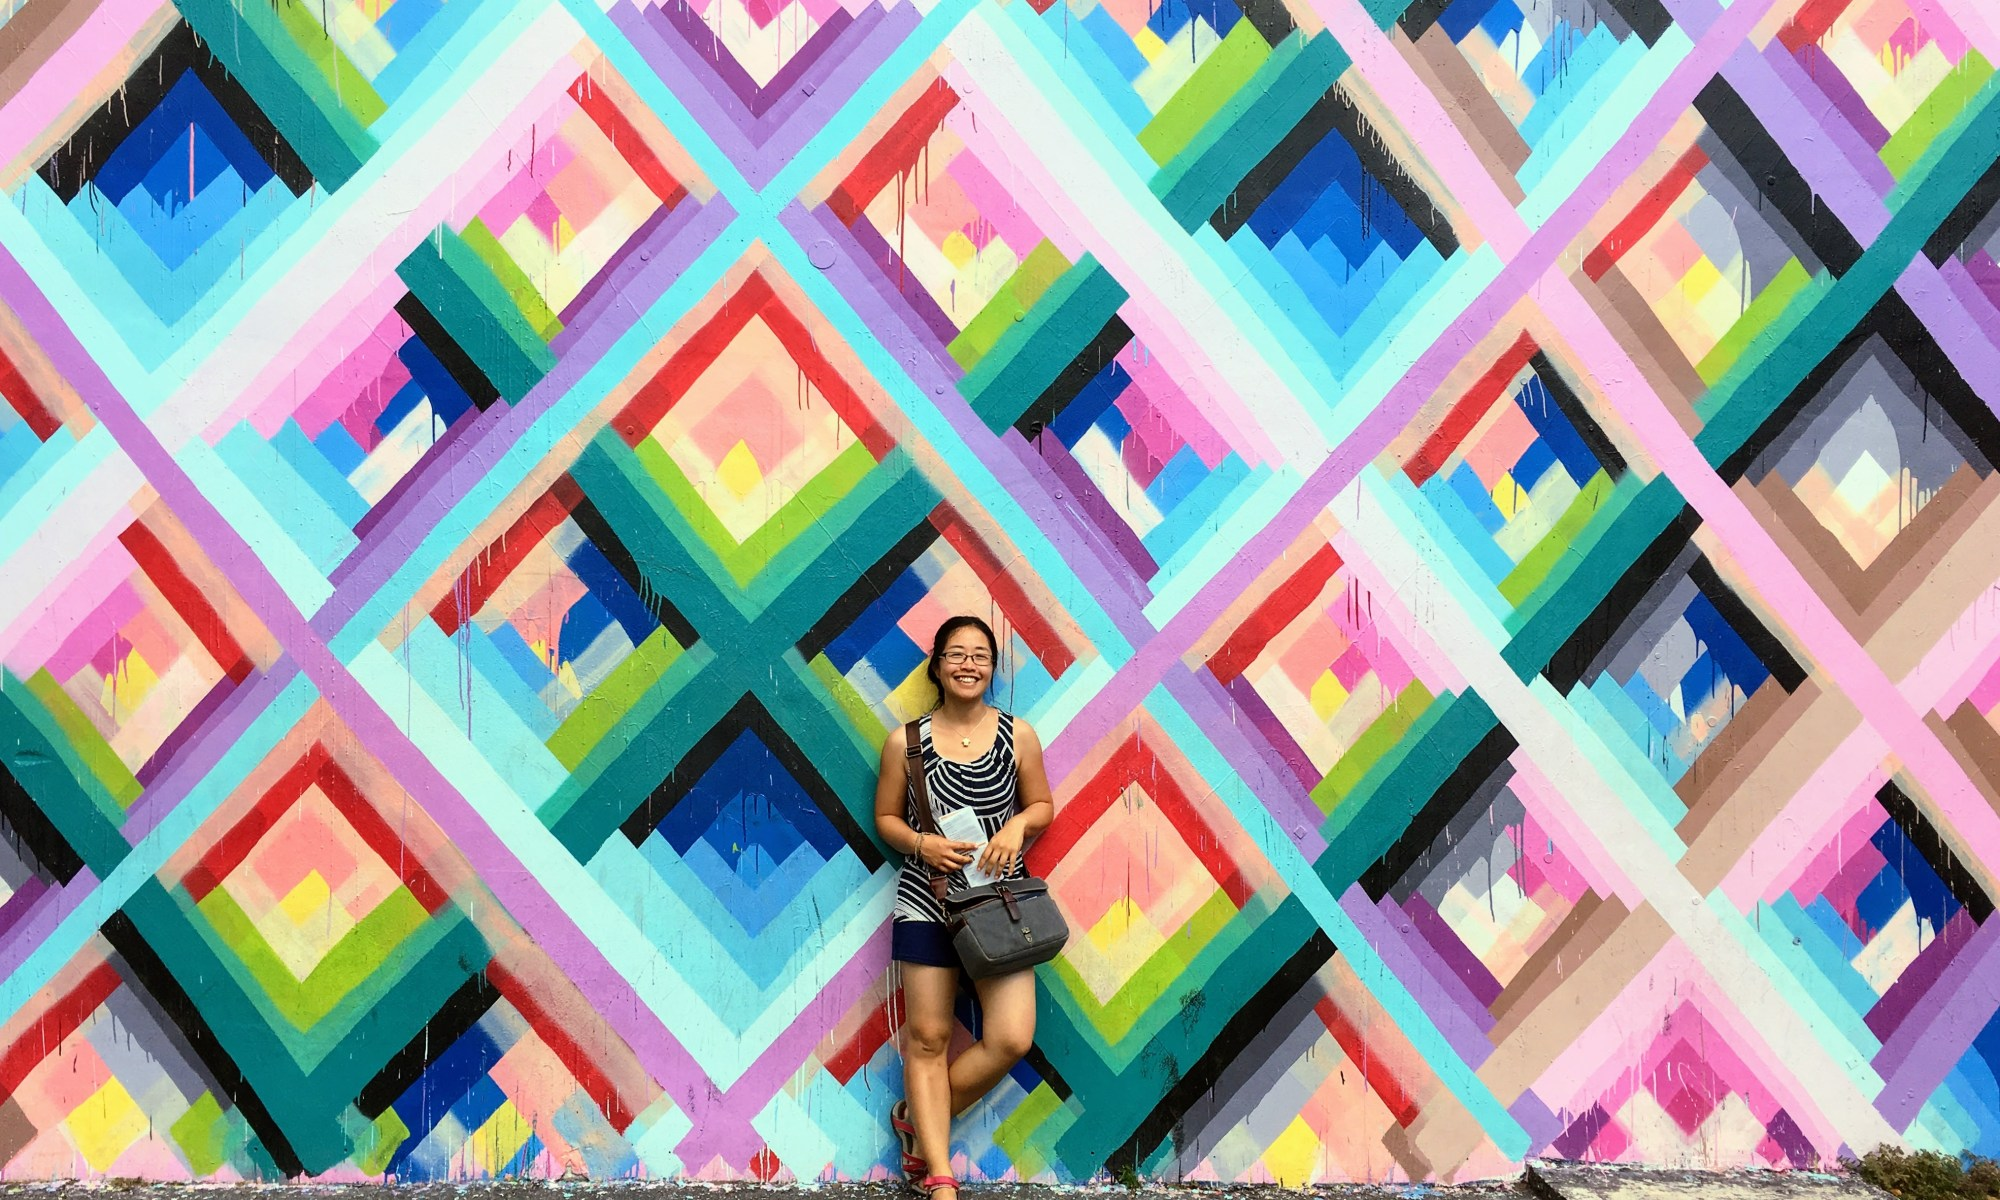 One of the many colorful murals in Wynnwood - love this one for some reason.